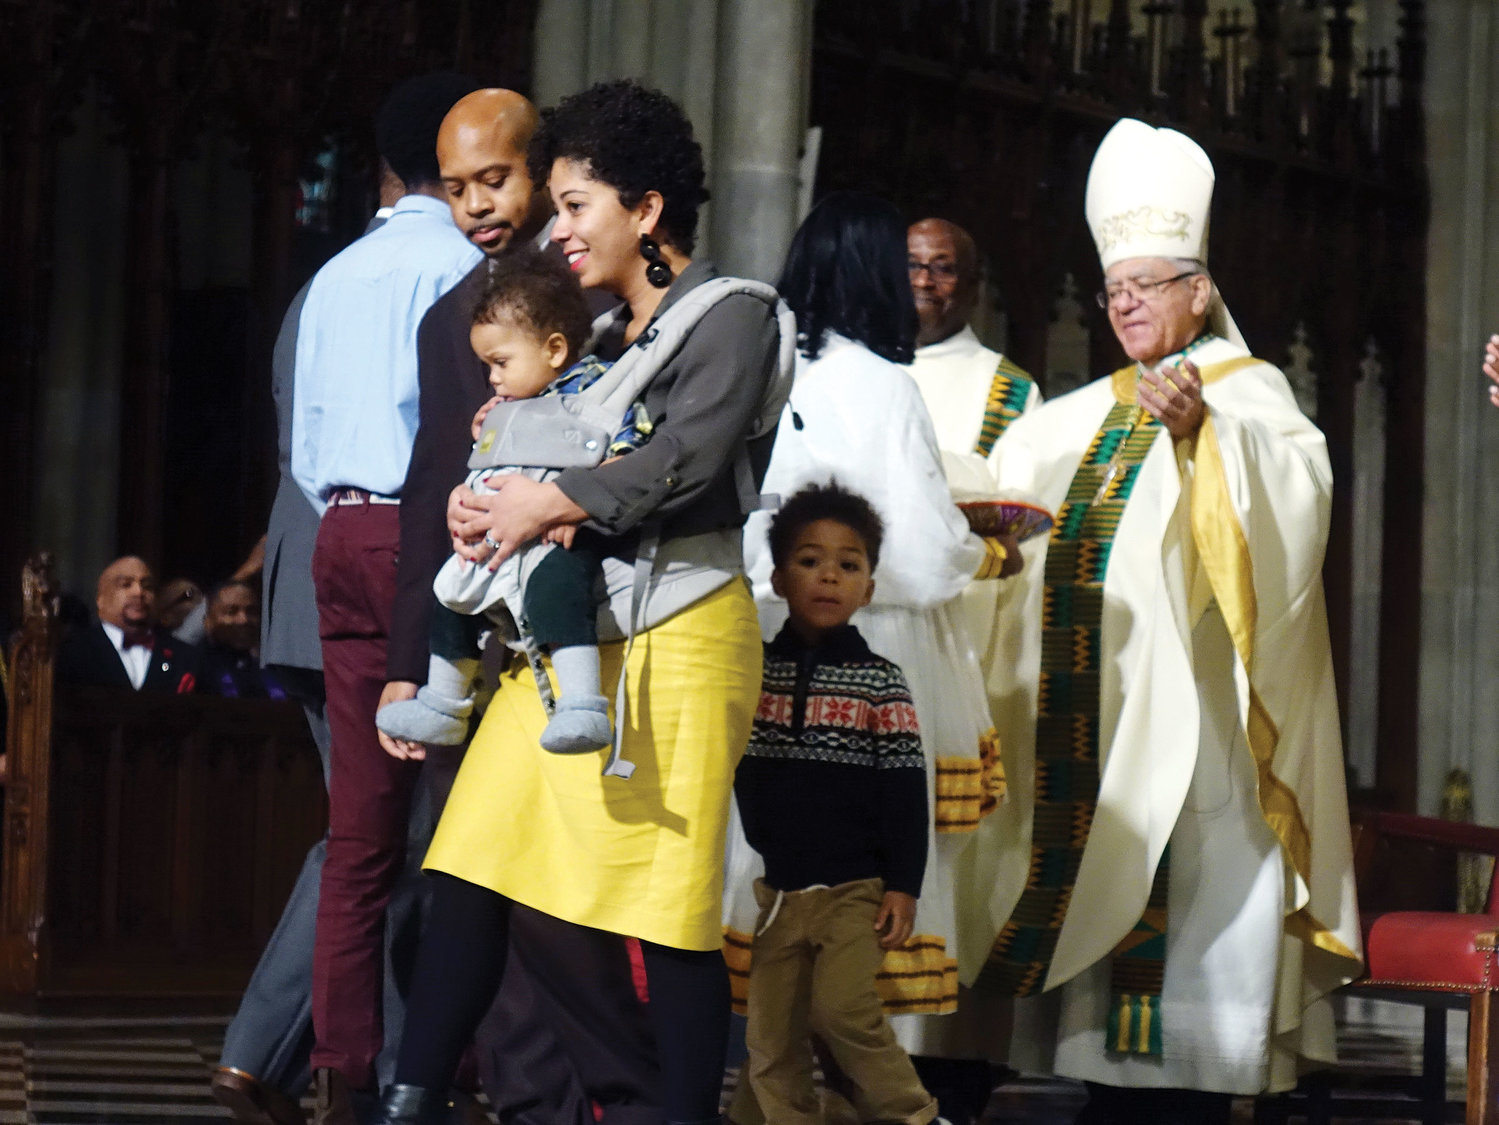 A young family walks closely together after presenting the offertory gifts to Auxiliary Bishop Guy Sansaricq of the Diocese of Brooklyn at the archdiocesan Black History Month Mass in St. Patrick's Cathedral Feb. 3. This year's Black History Month celebration was spread over the entire weekend, incorporating a film screening at the Sheen Center and a day of service.